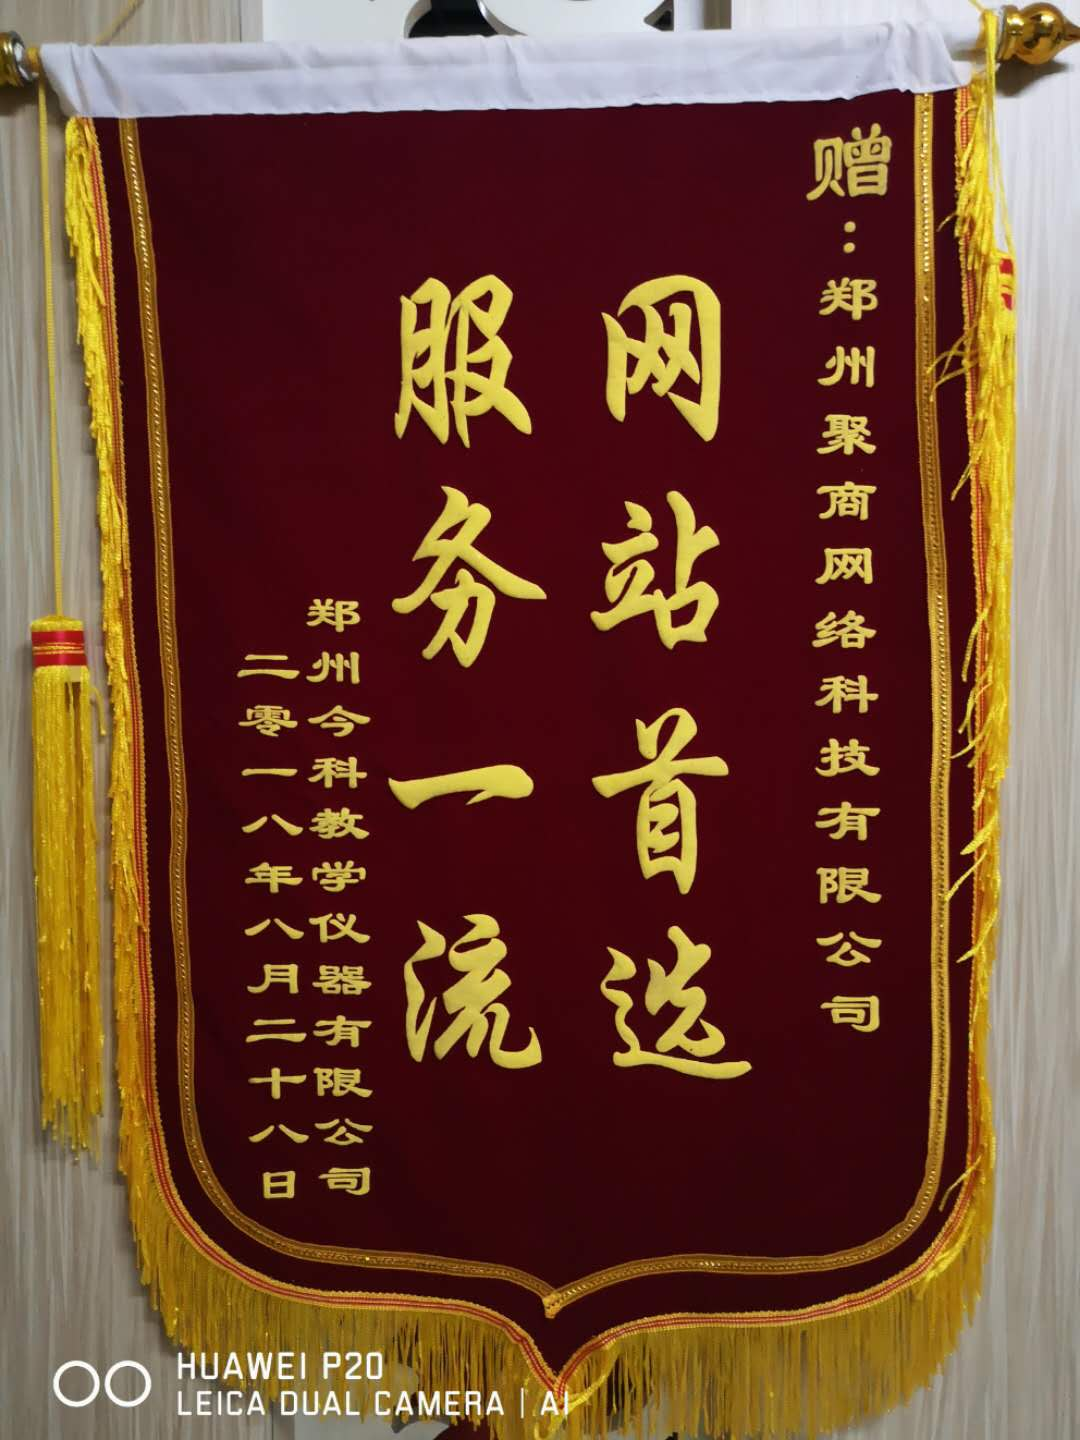 The banner sent by President Li of Zhengzhou Jinke Teaching Instrument Co., Ltd.